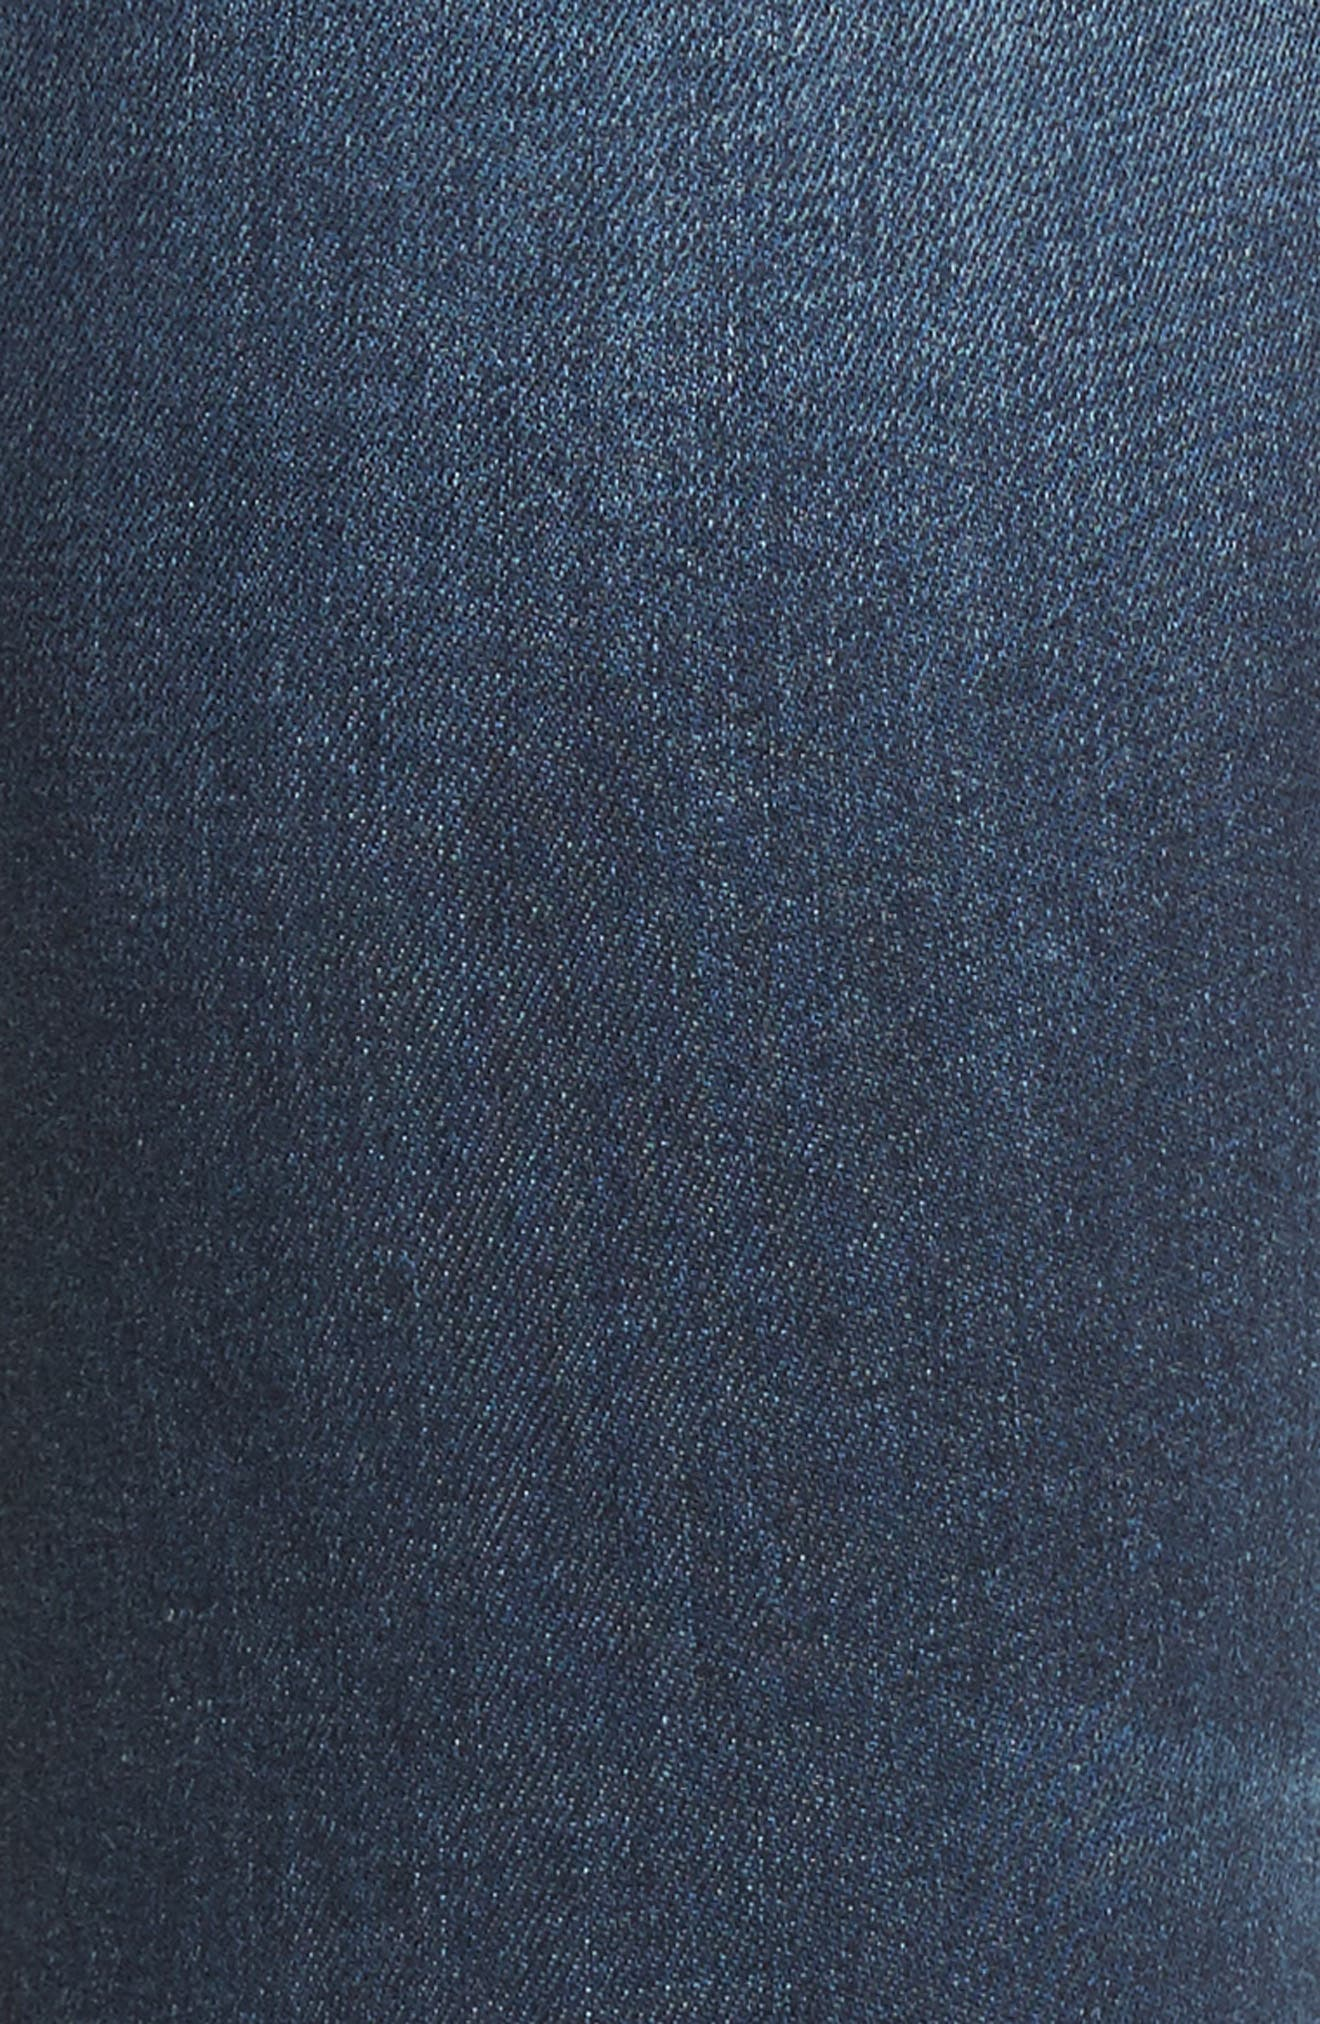 Jagger Distressed Skinny Jeans,                             Alternate thumbnail 5, color,                             403